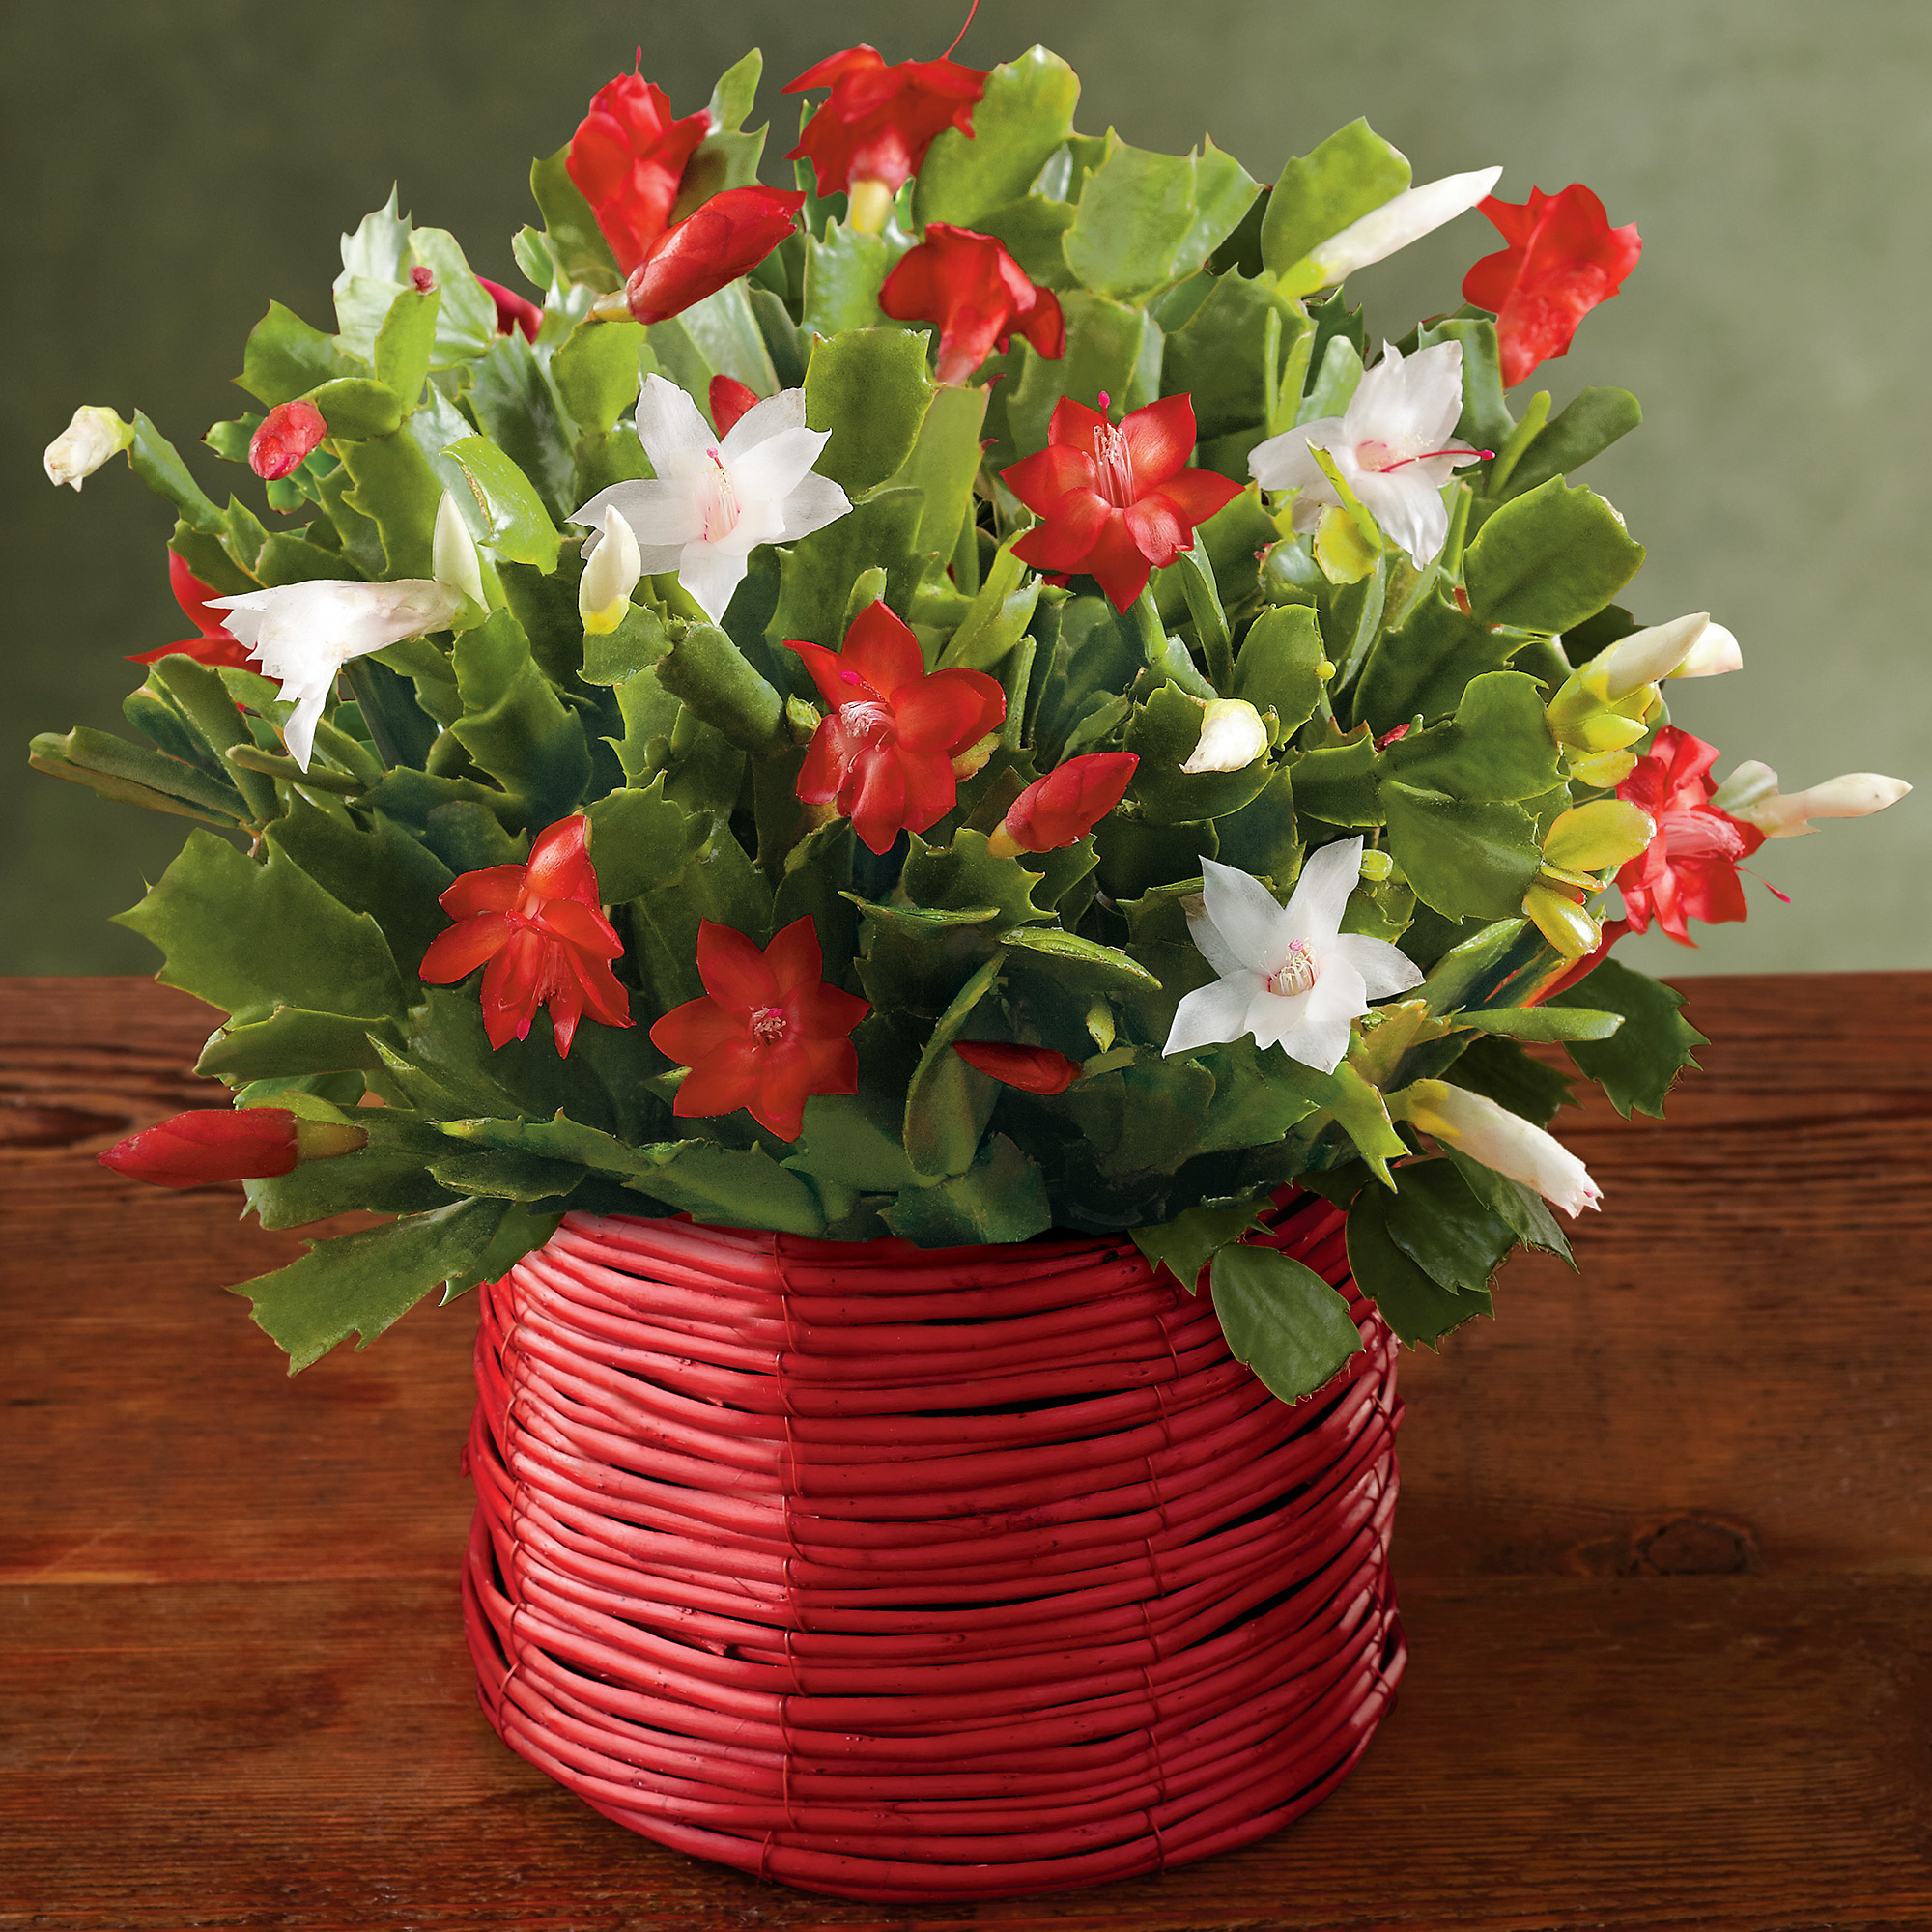 christmas tree cactus garden - photo #39